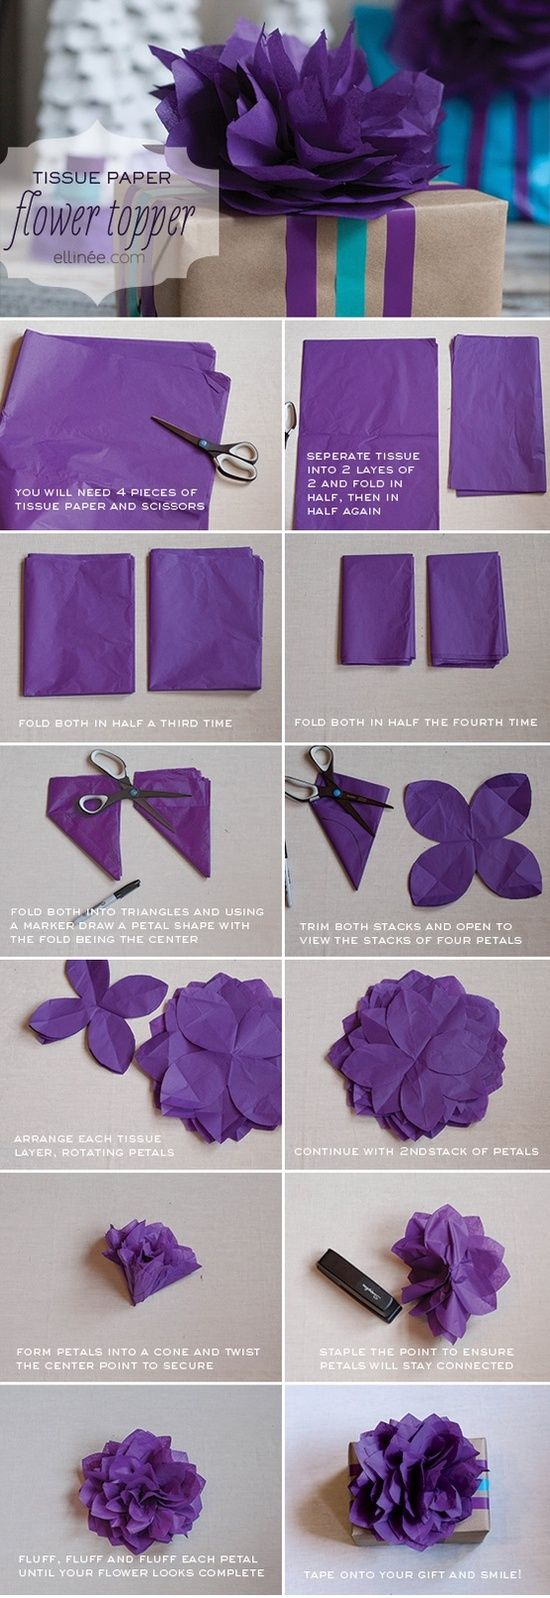 Diy Tissue Paper Flowers You Be Quilling Other Paper Projects